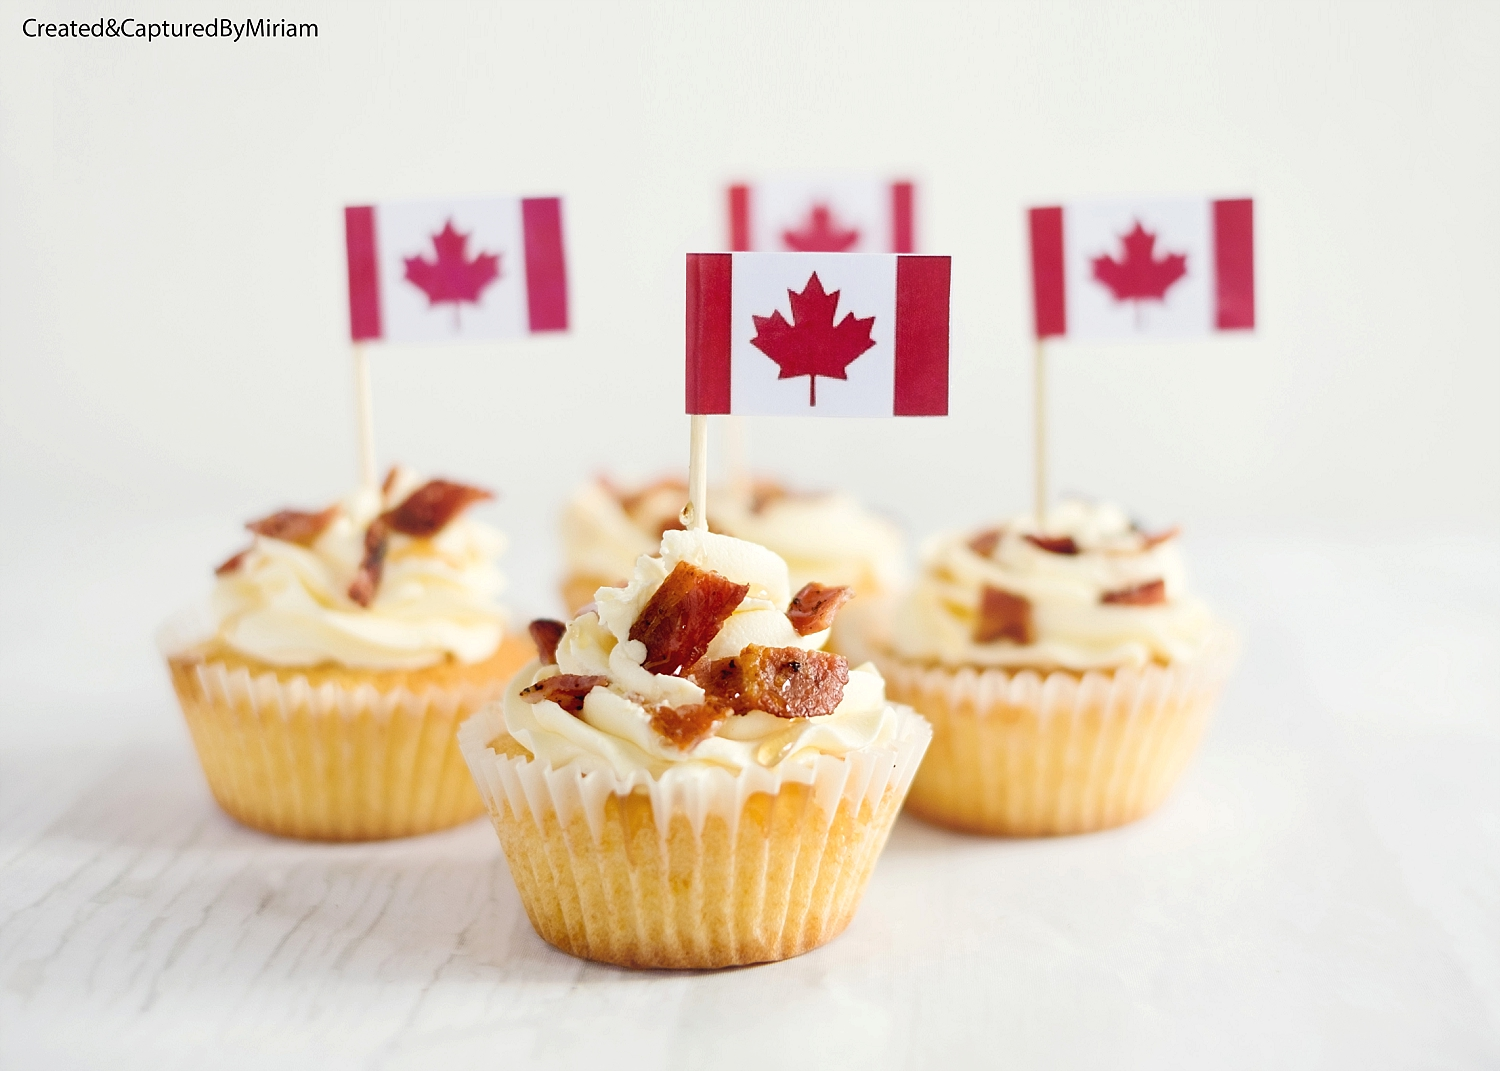 Bacon & Maple Syrup Cupcakes